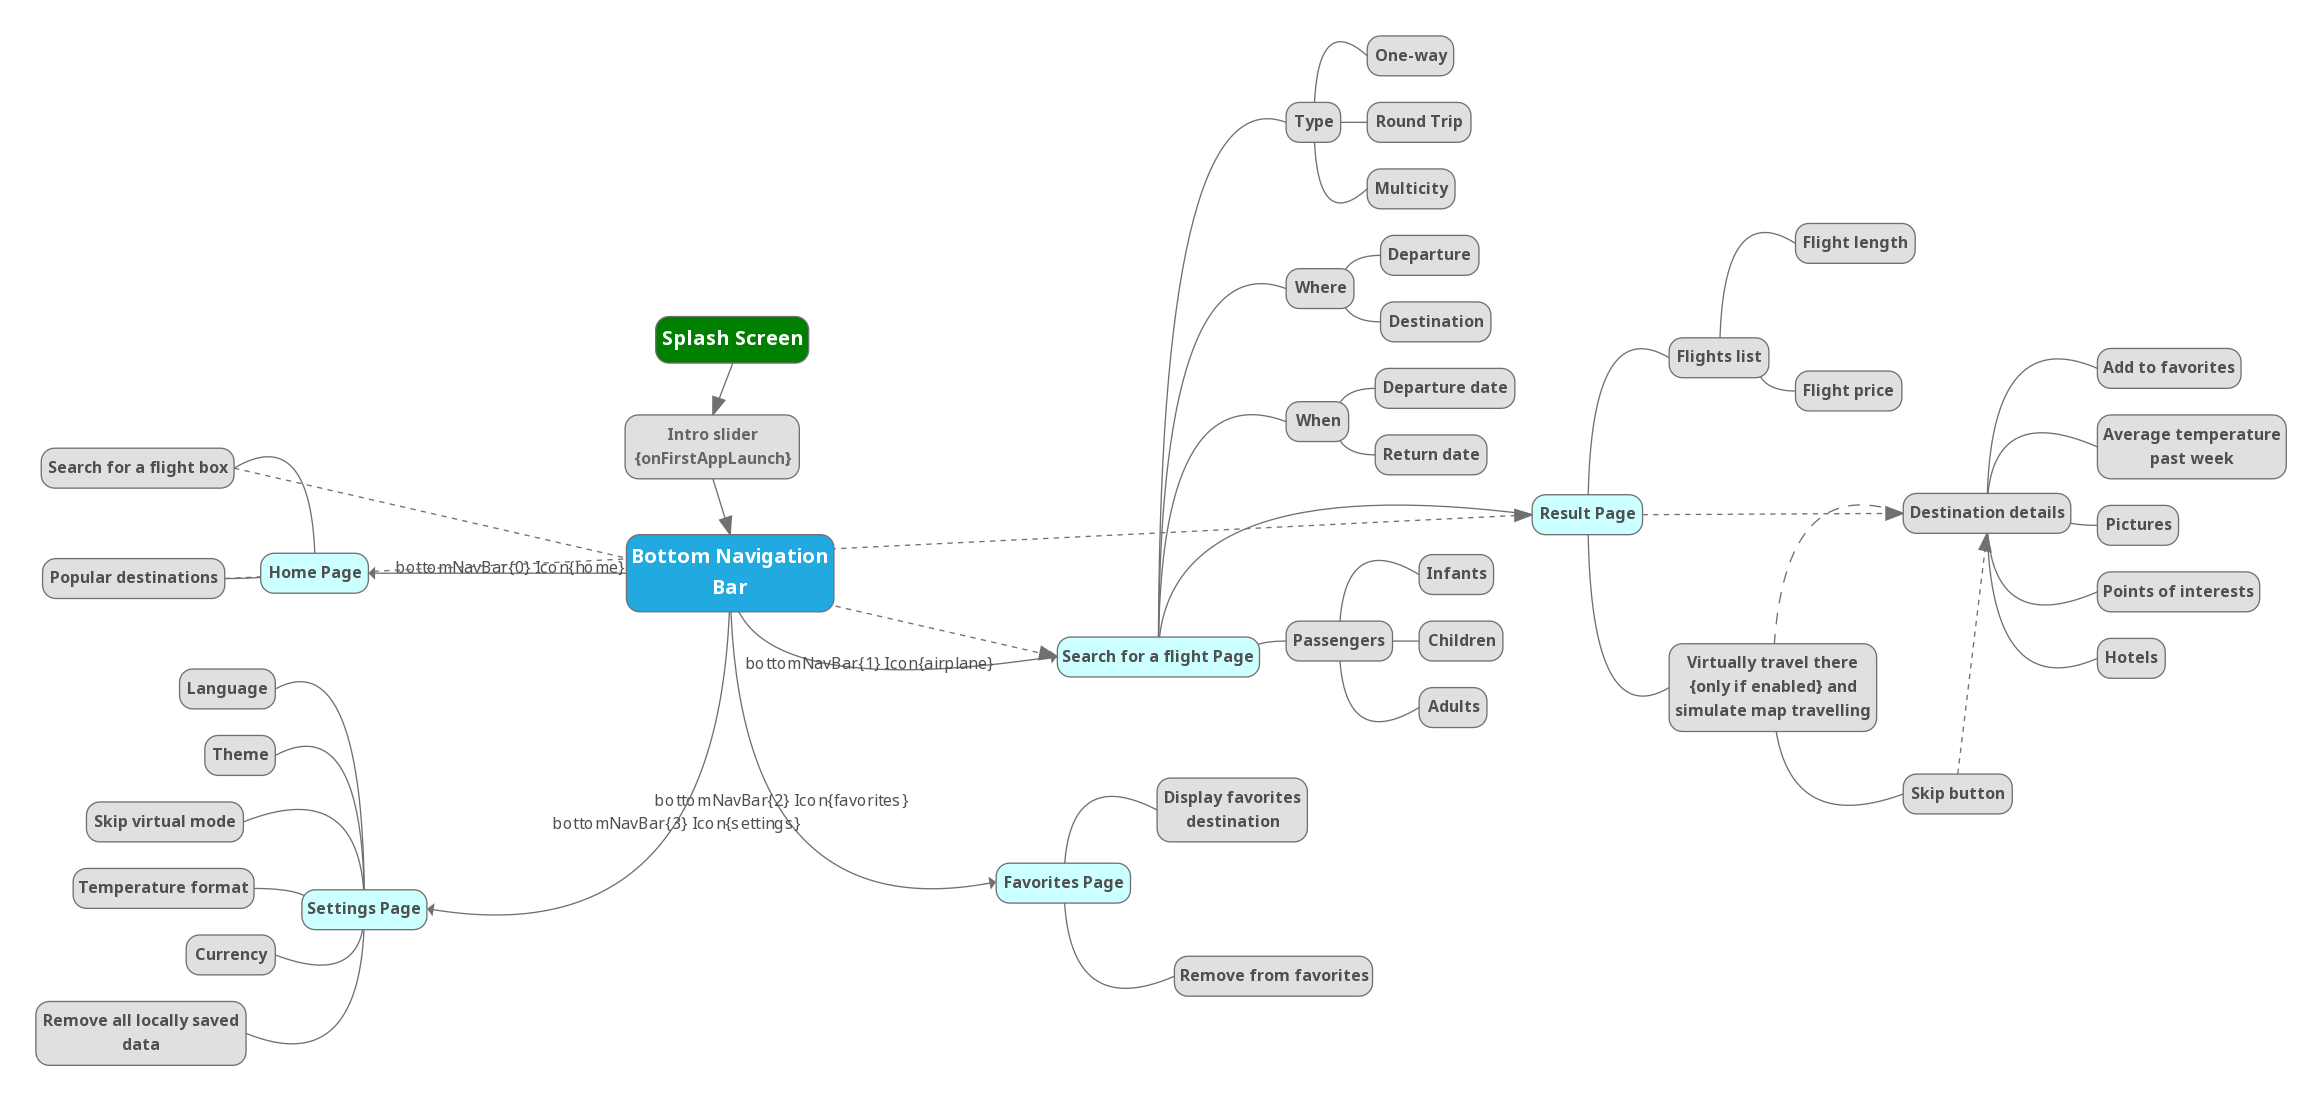 visualizing the flow of the app